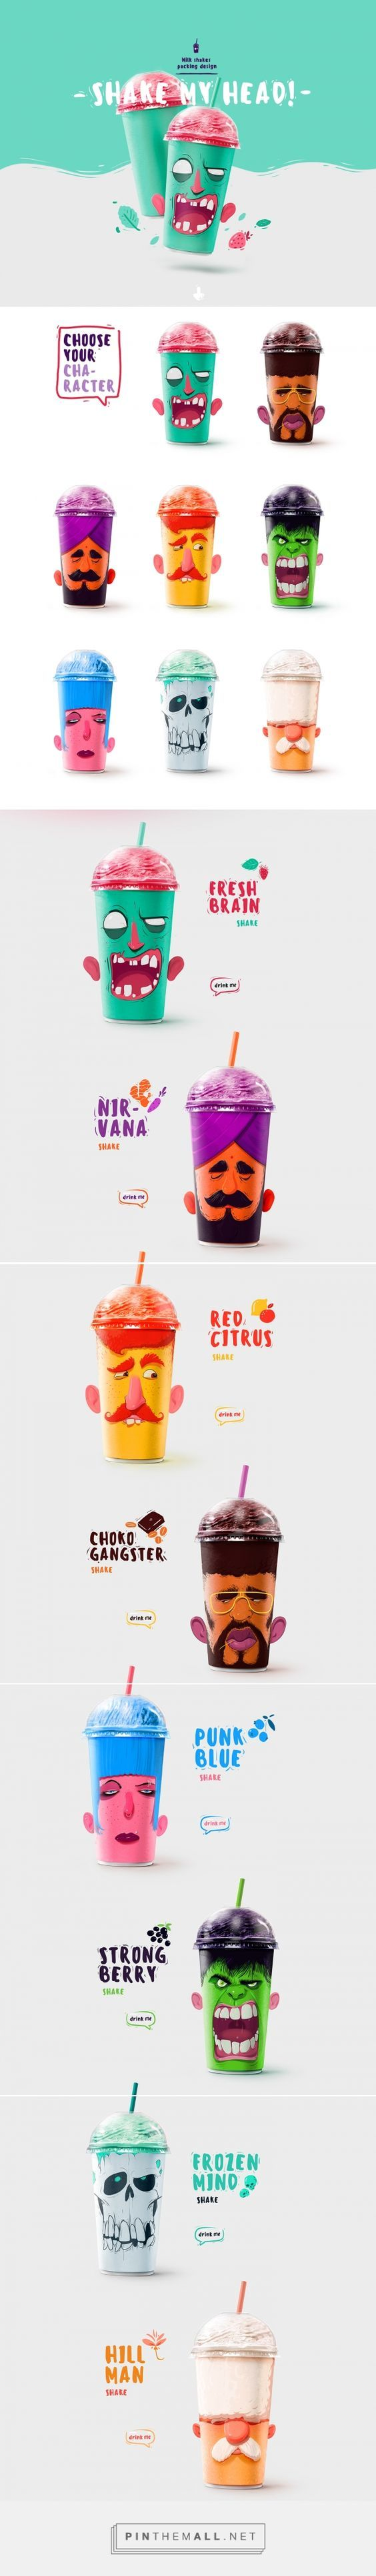 Illustration, graphic design and packaging for Shake my head on Behance by Rustam Usmanov Moscow, Russian Federation curated by Packaging Diva PD. Let's have a milkshake for the packaging smile file : ):